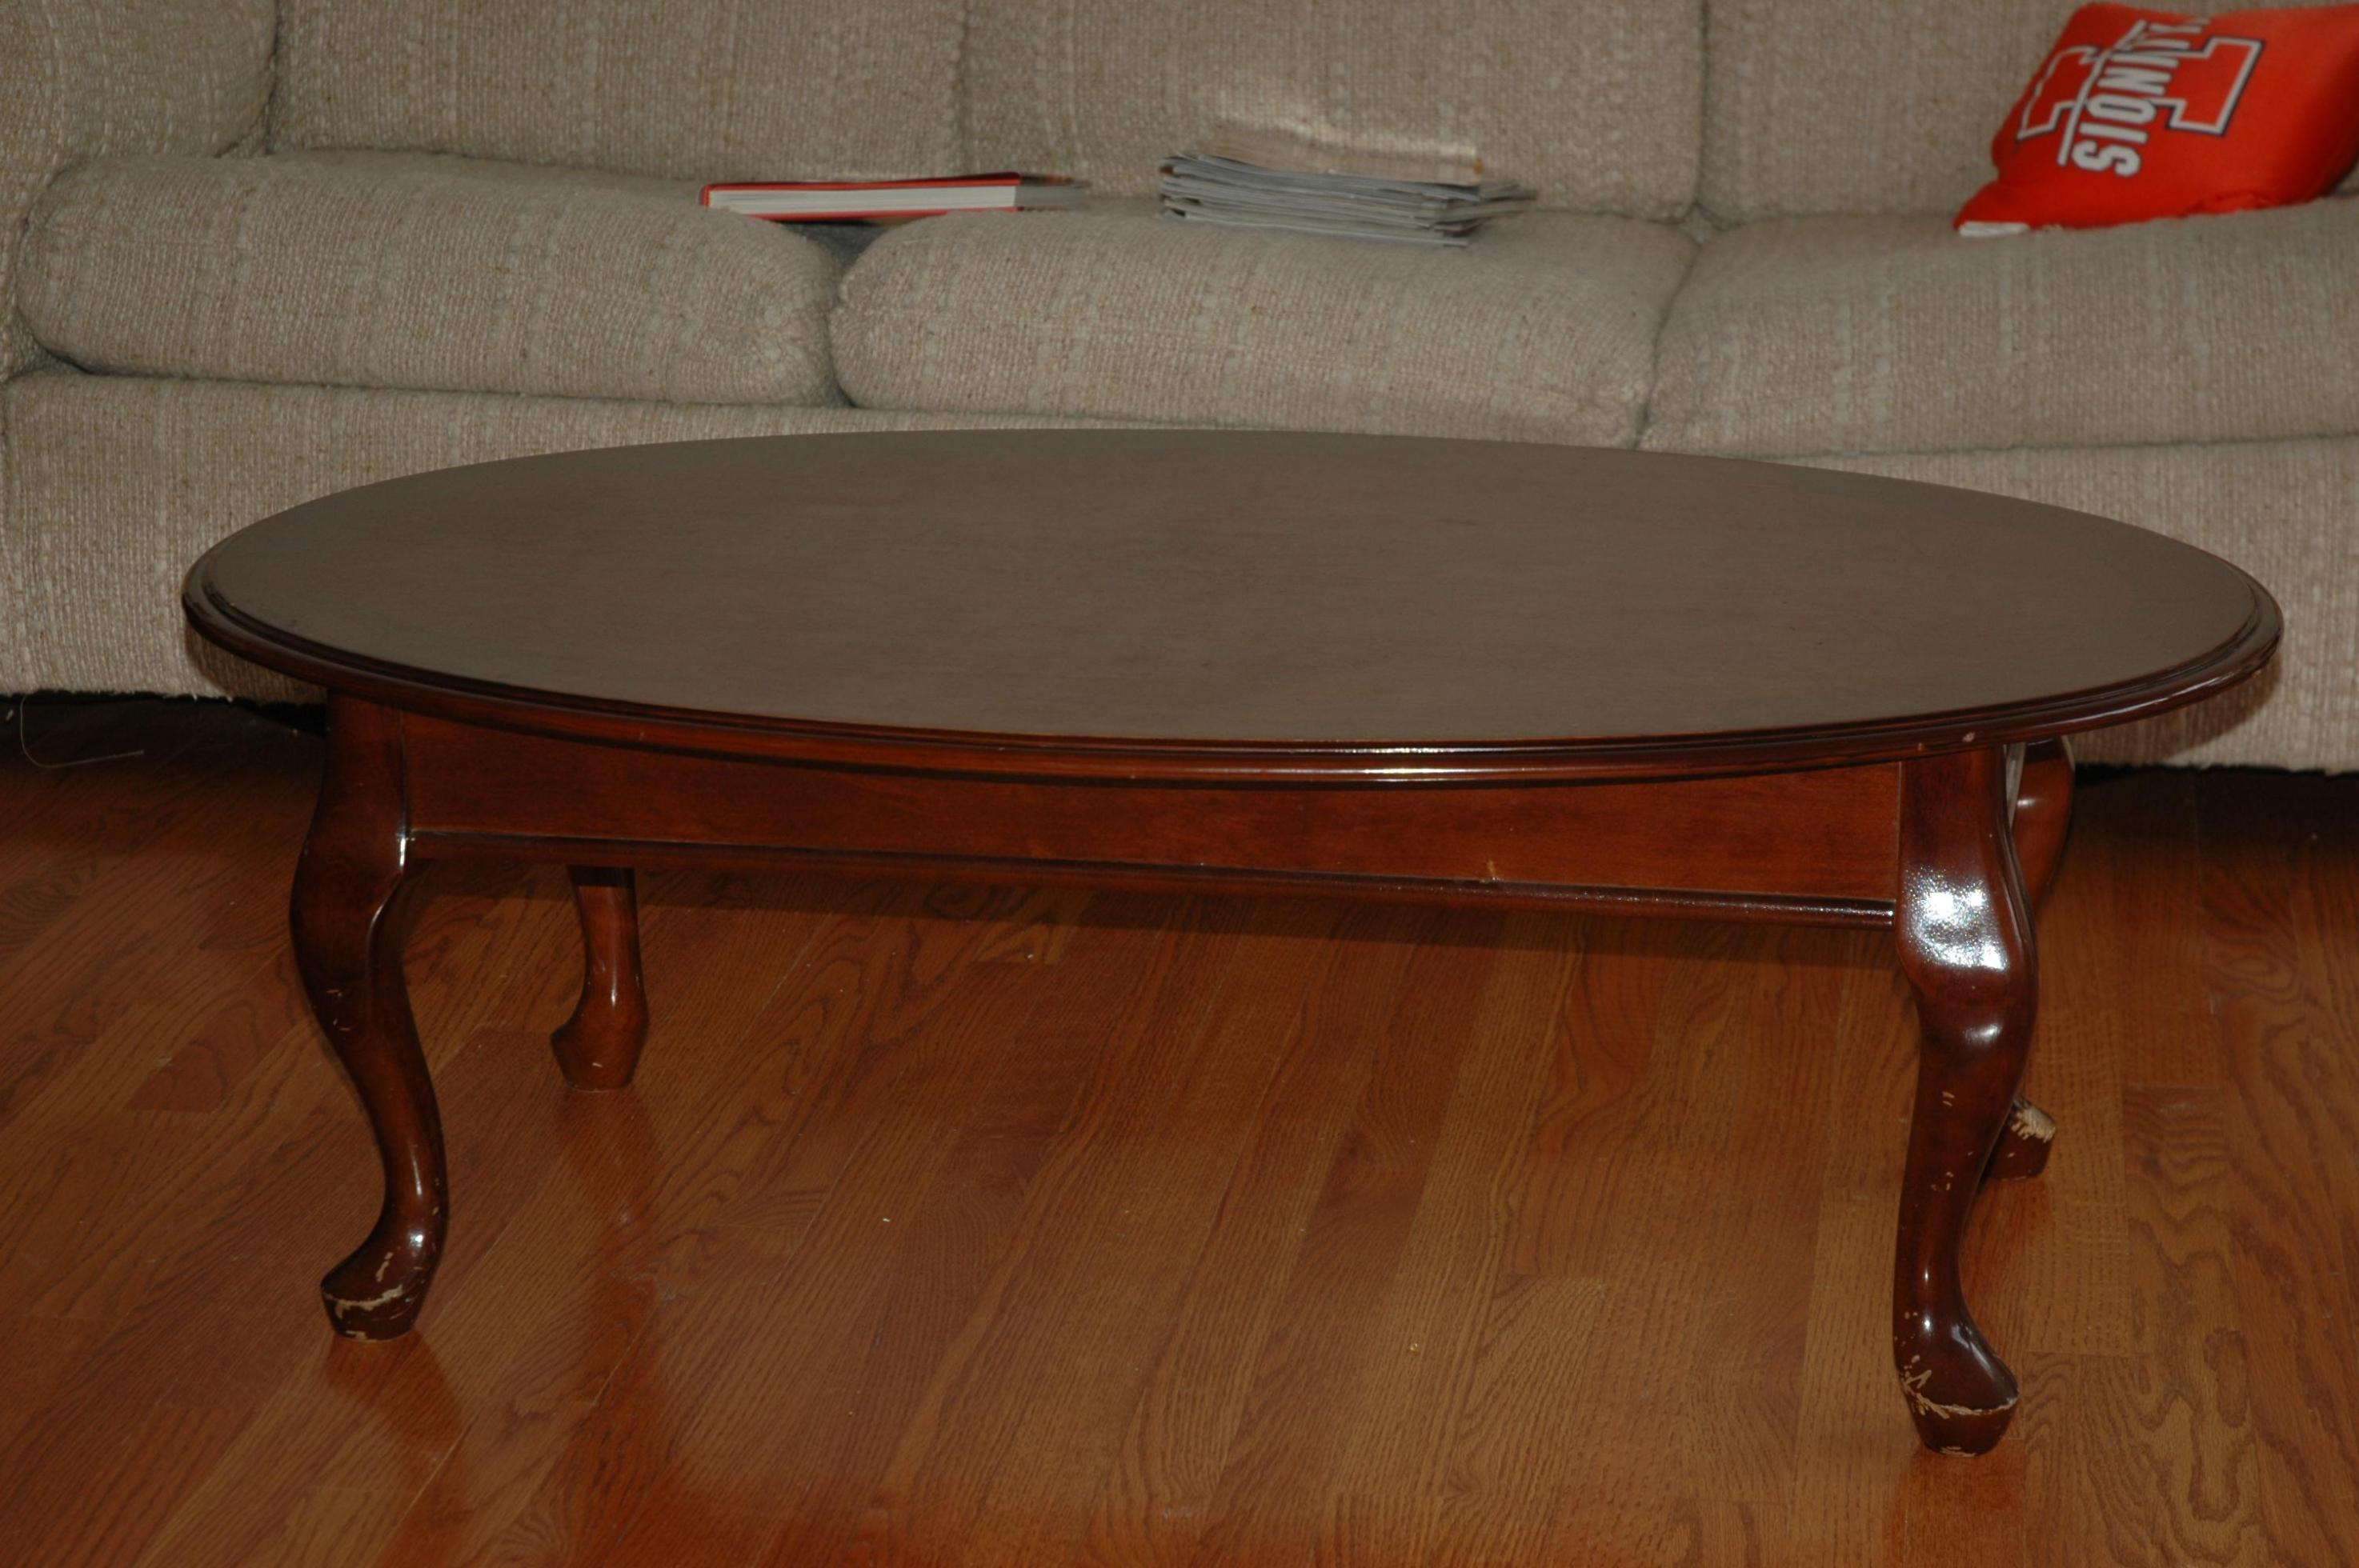 Inspiring oval coffee table for home furniture with oval wood coffee table